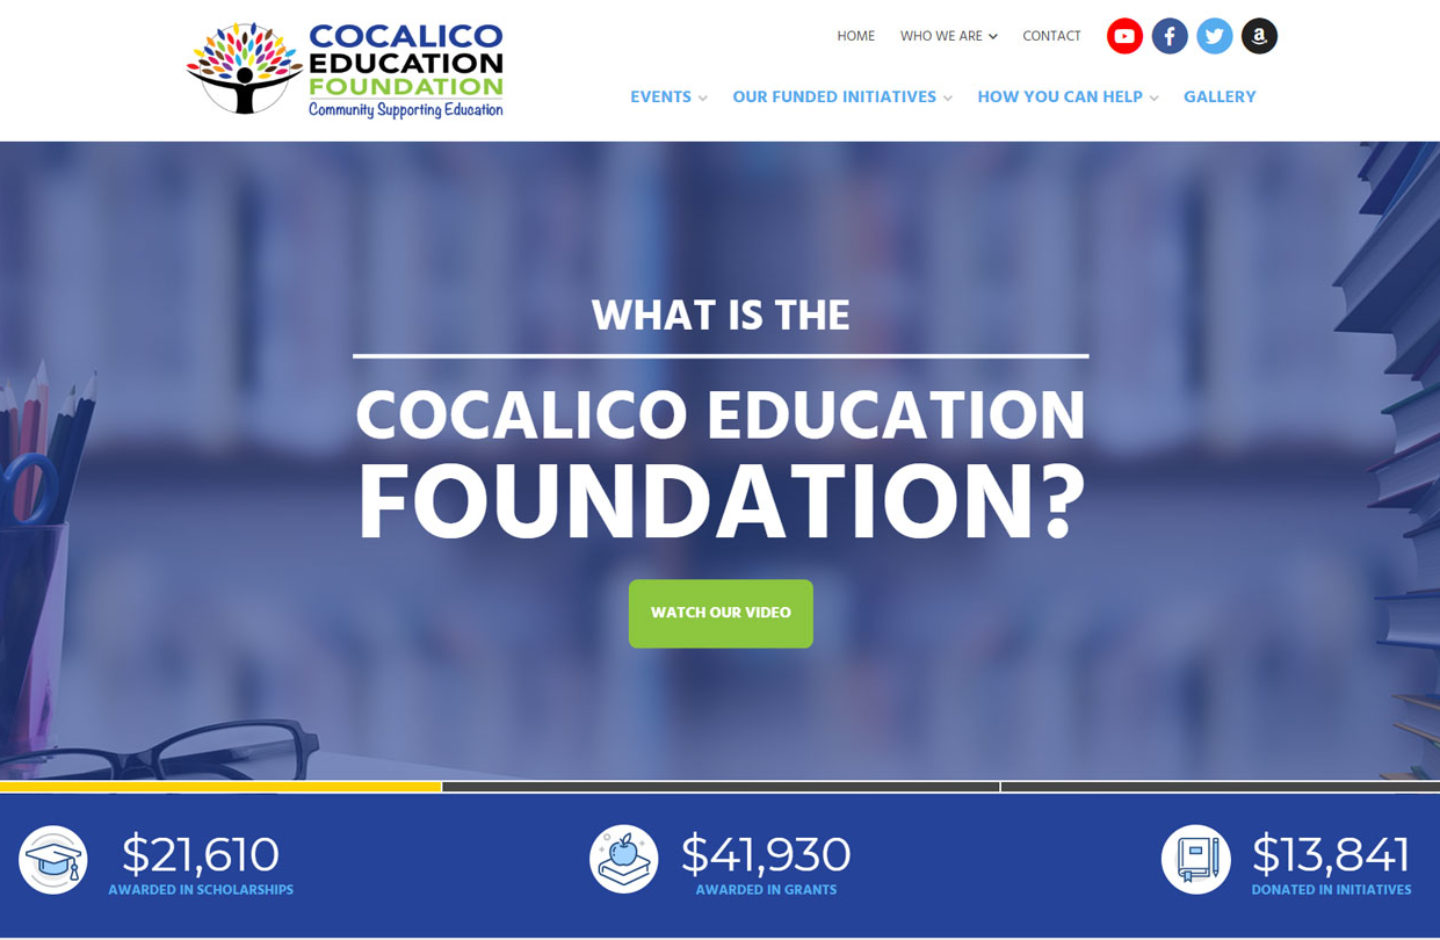 Cocalico Education Foundation